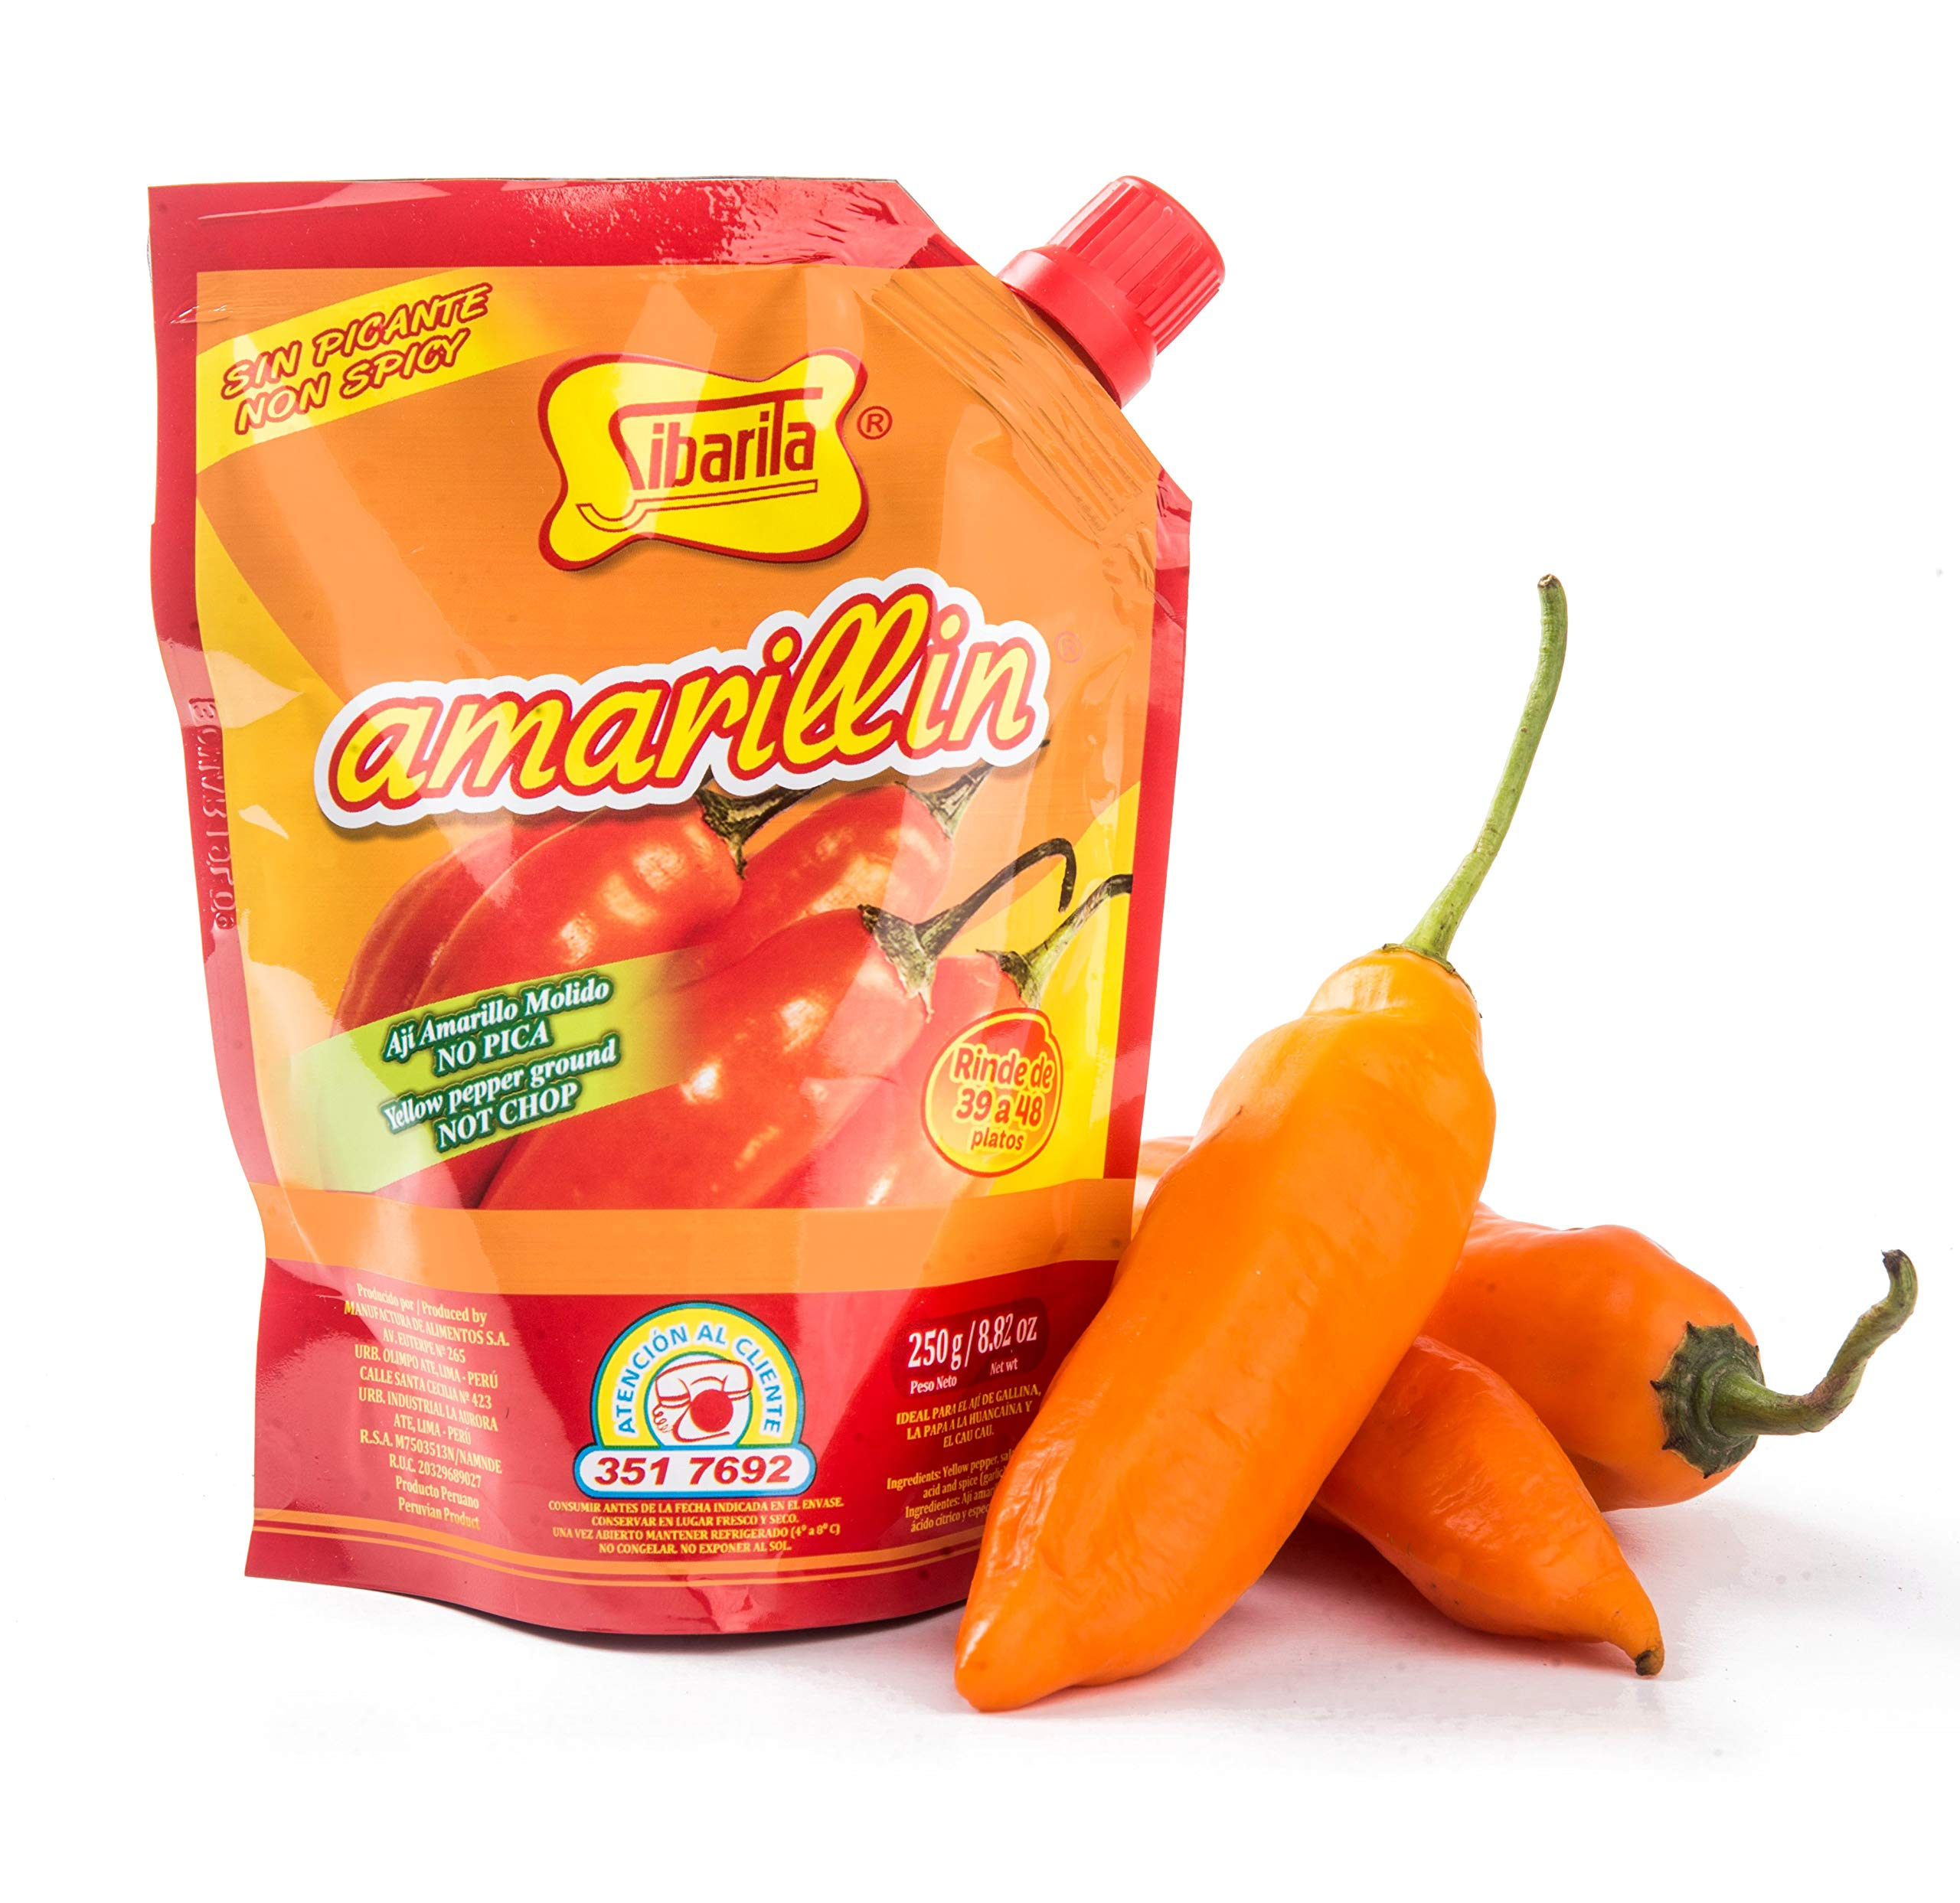 Sibarita Aji Amarillo Pepper Sauce - Peruvian Yellow Chili Paste Peppers - Non Spicy - 250